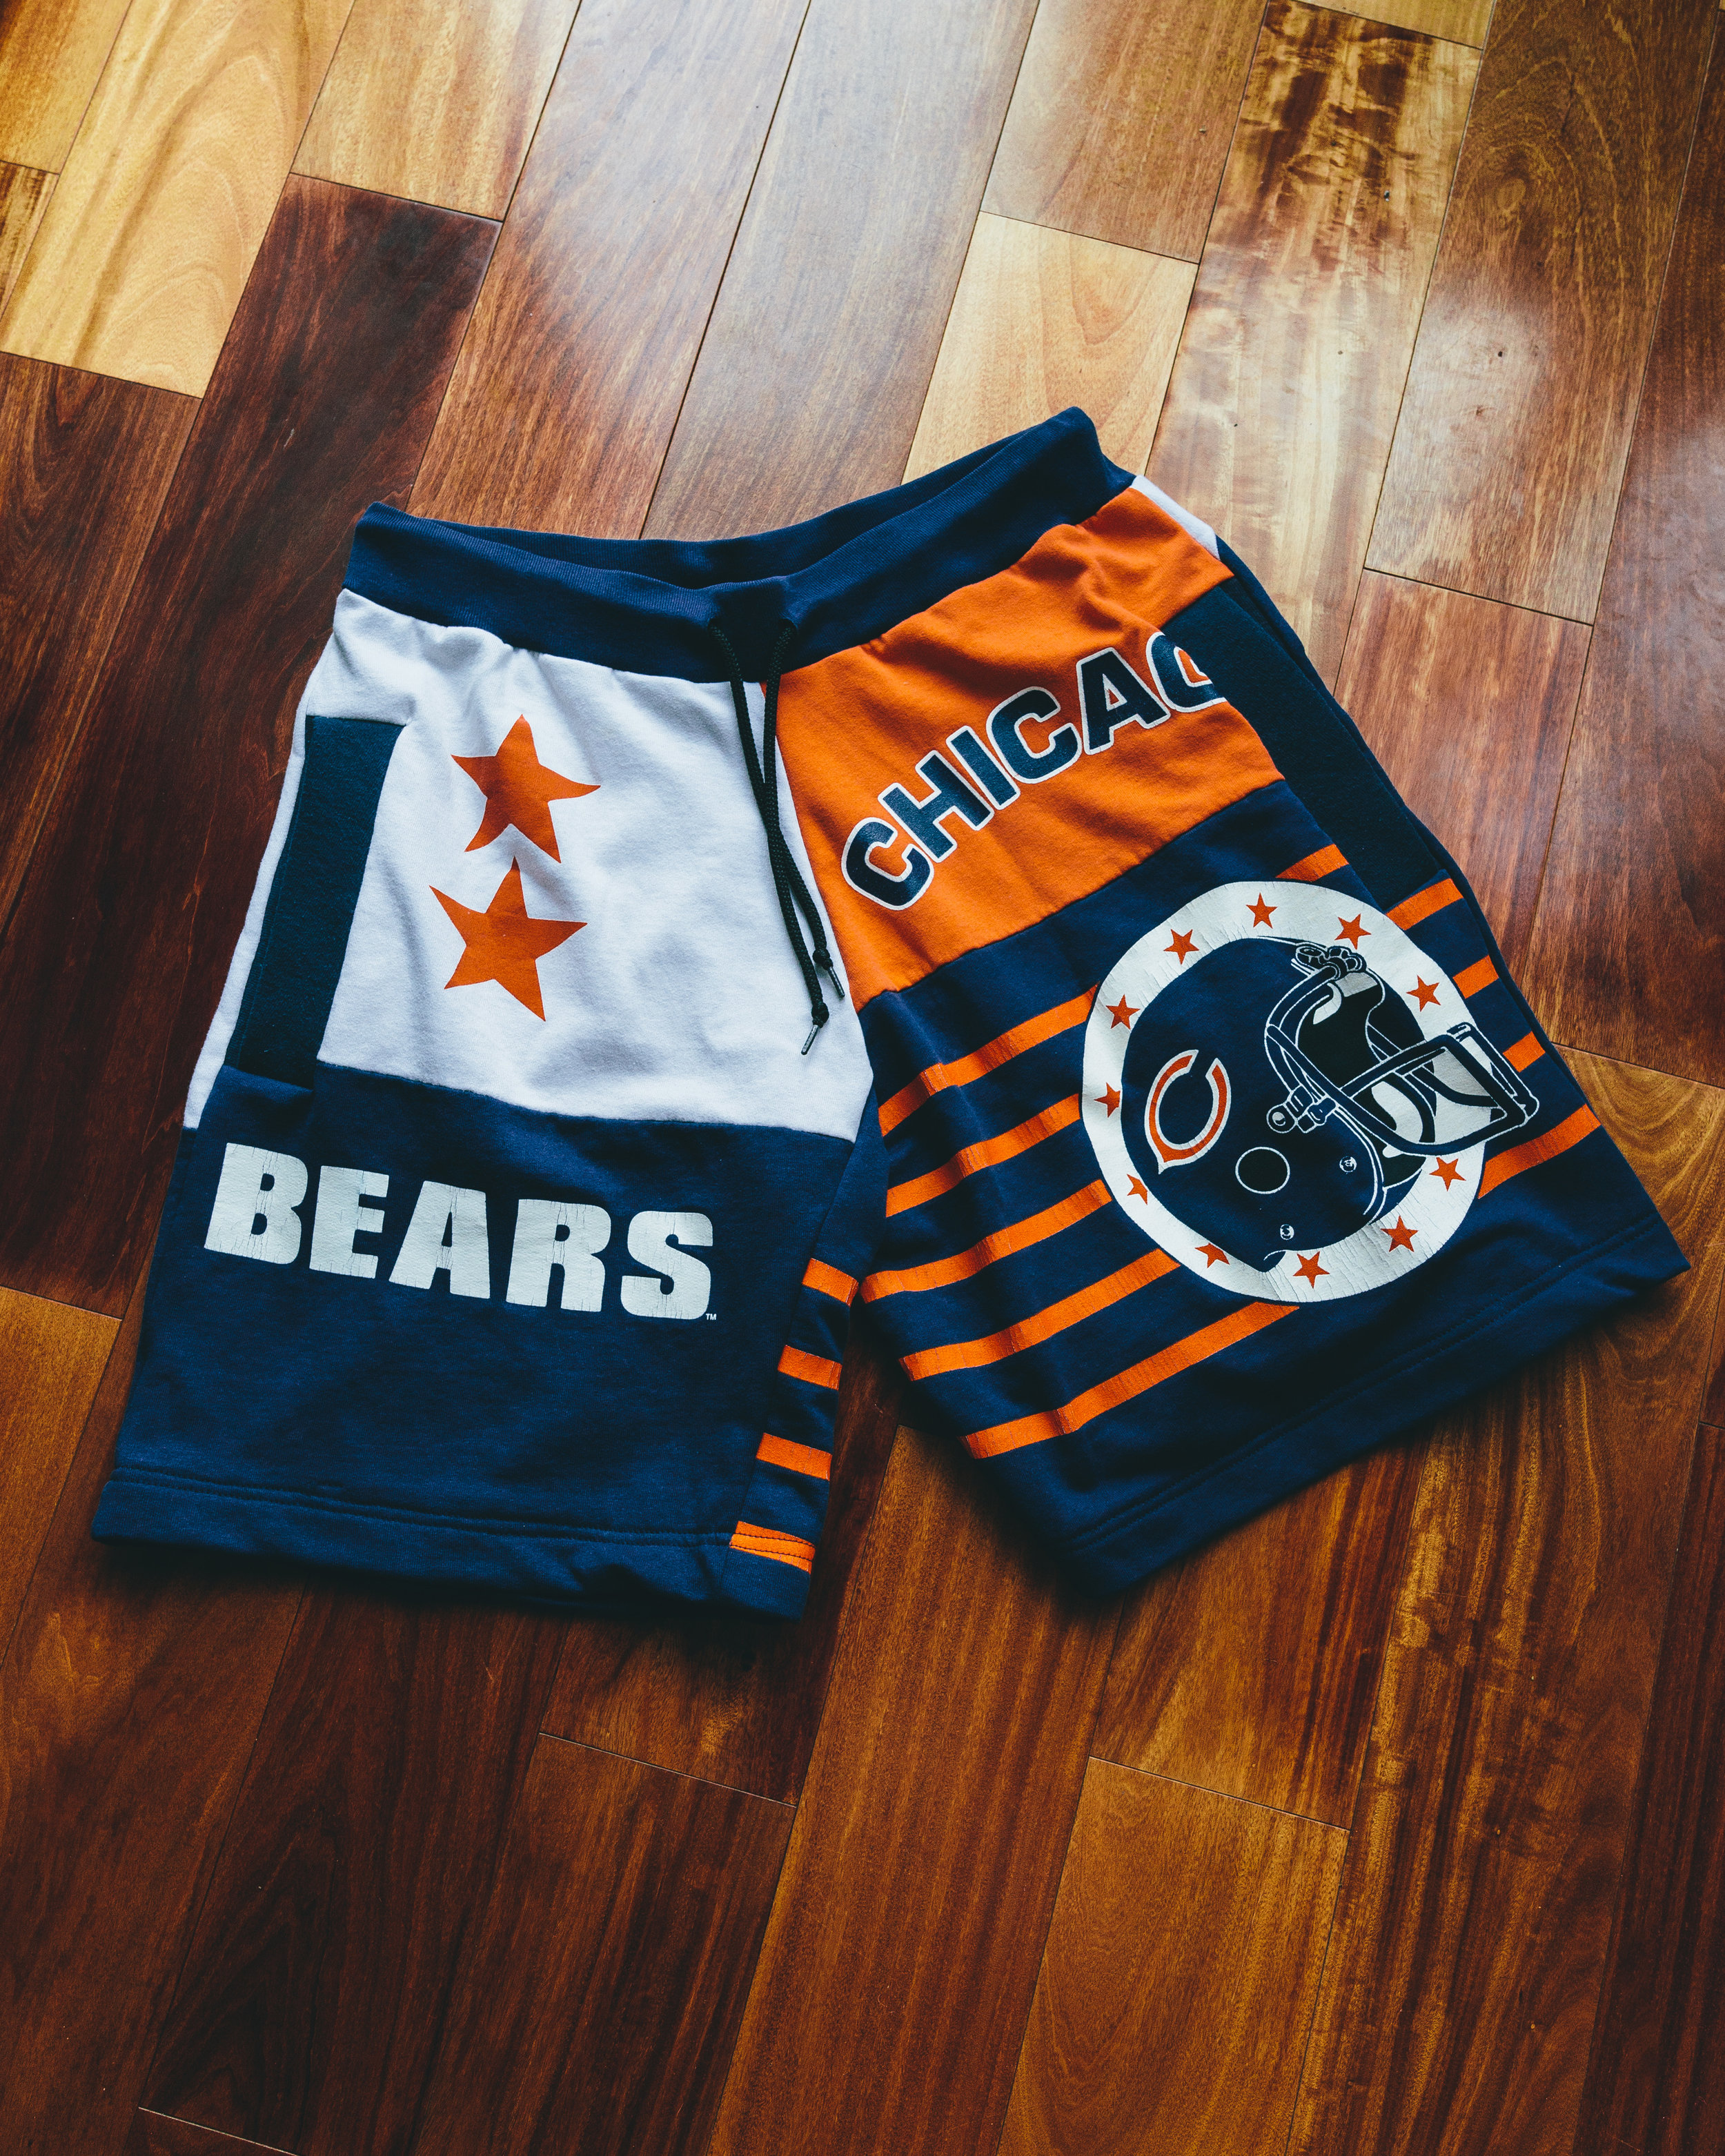 Bears Shorts - Made from vintage bears shorts